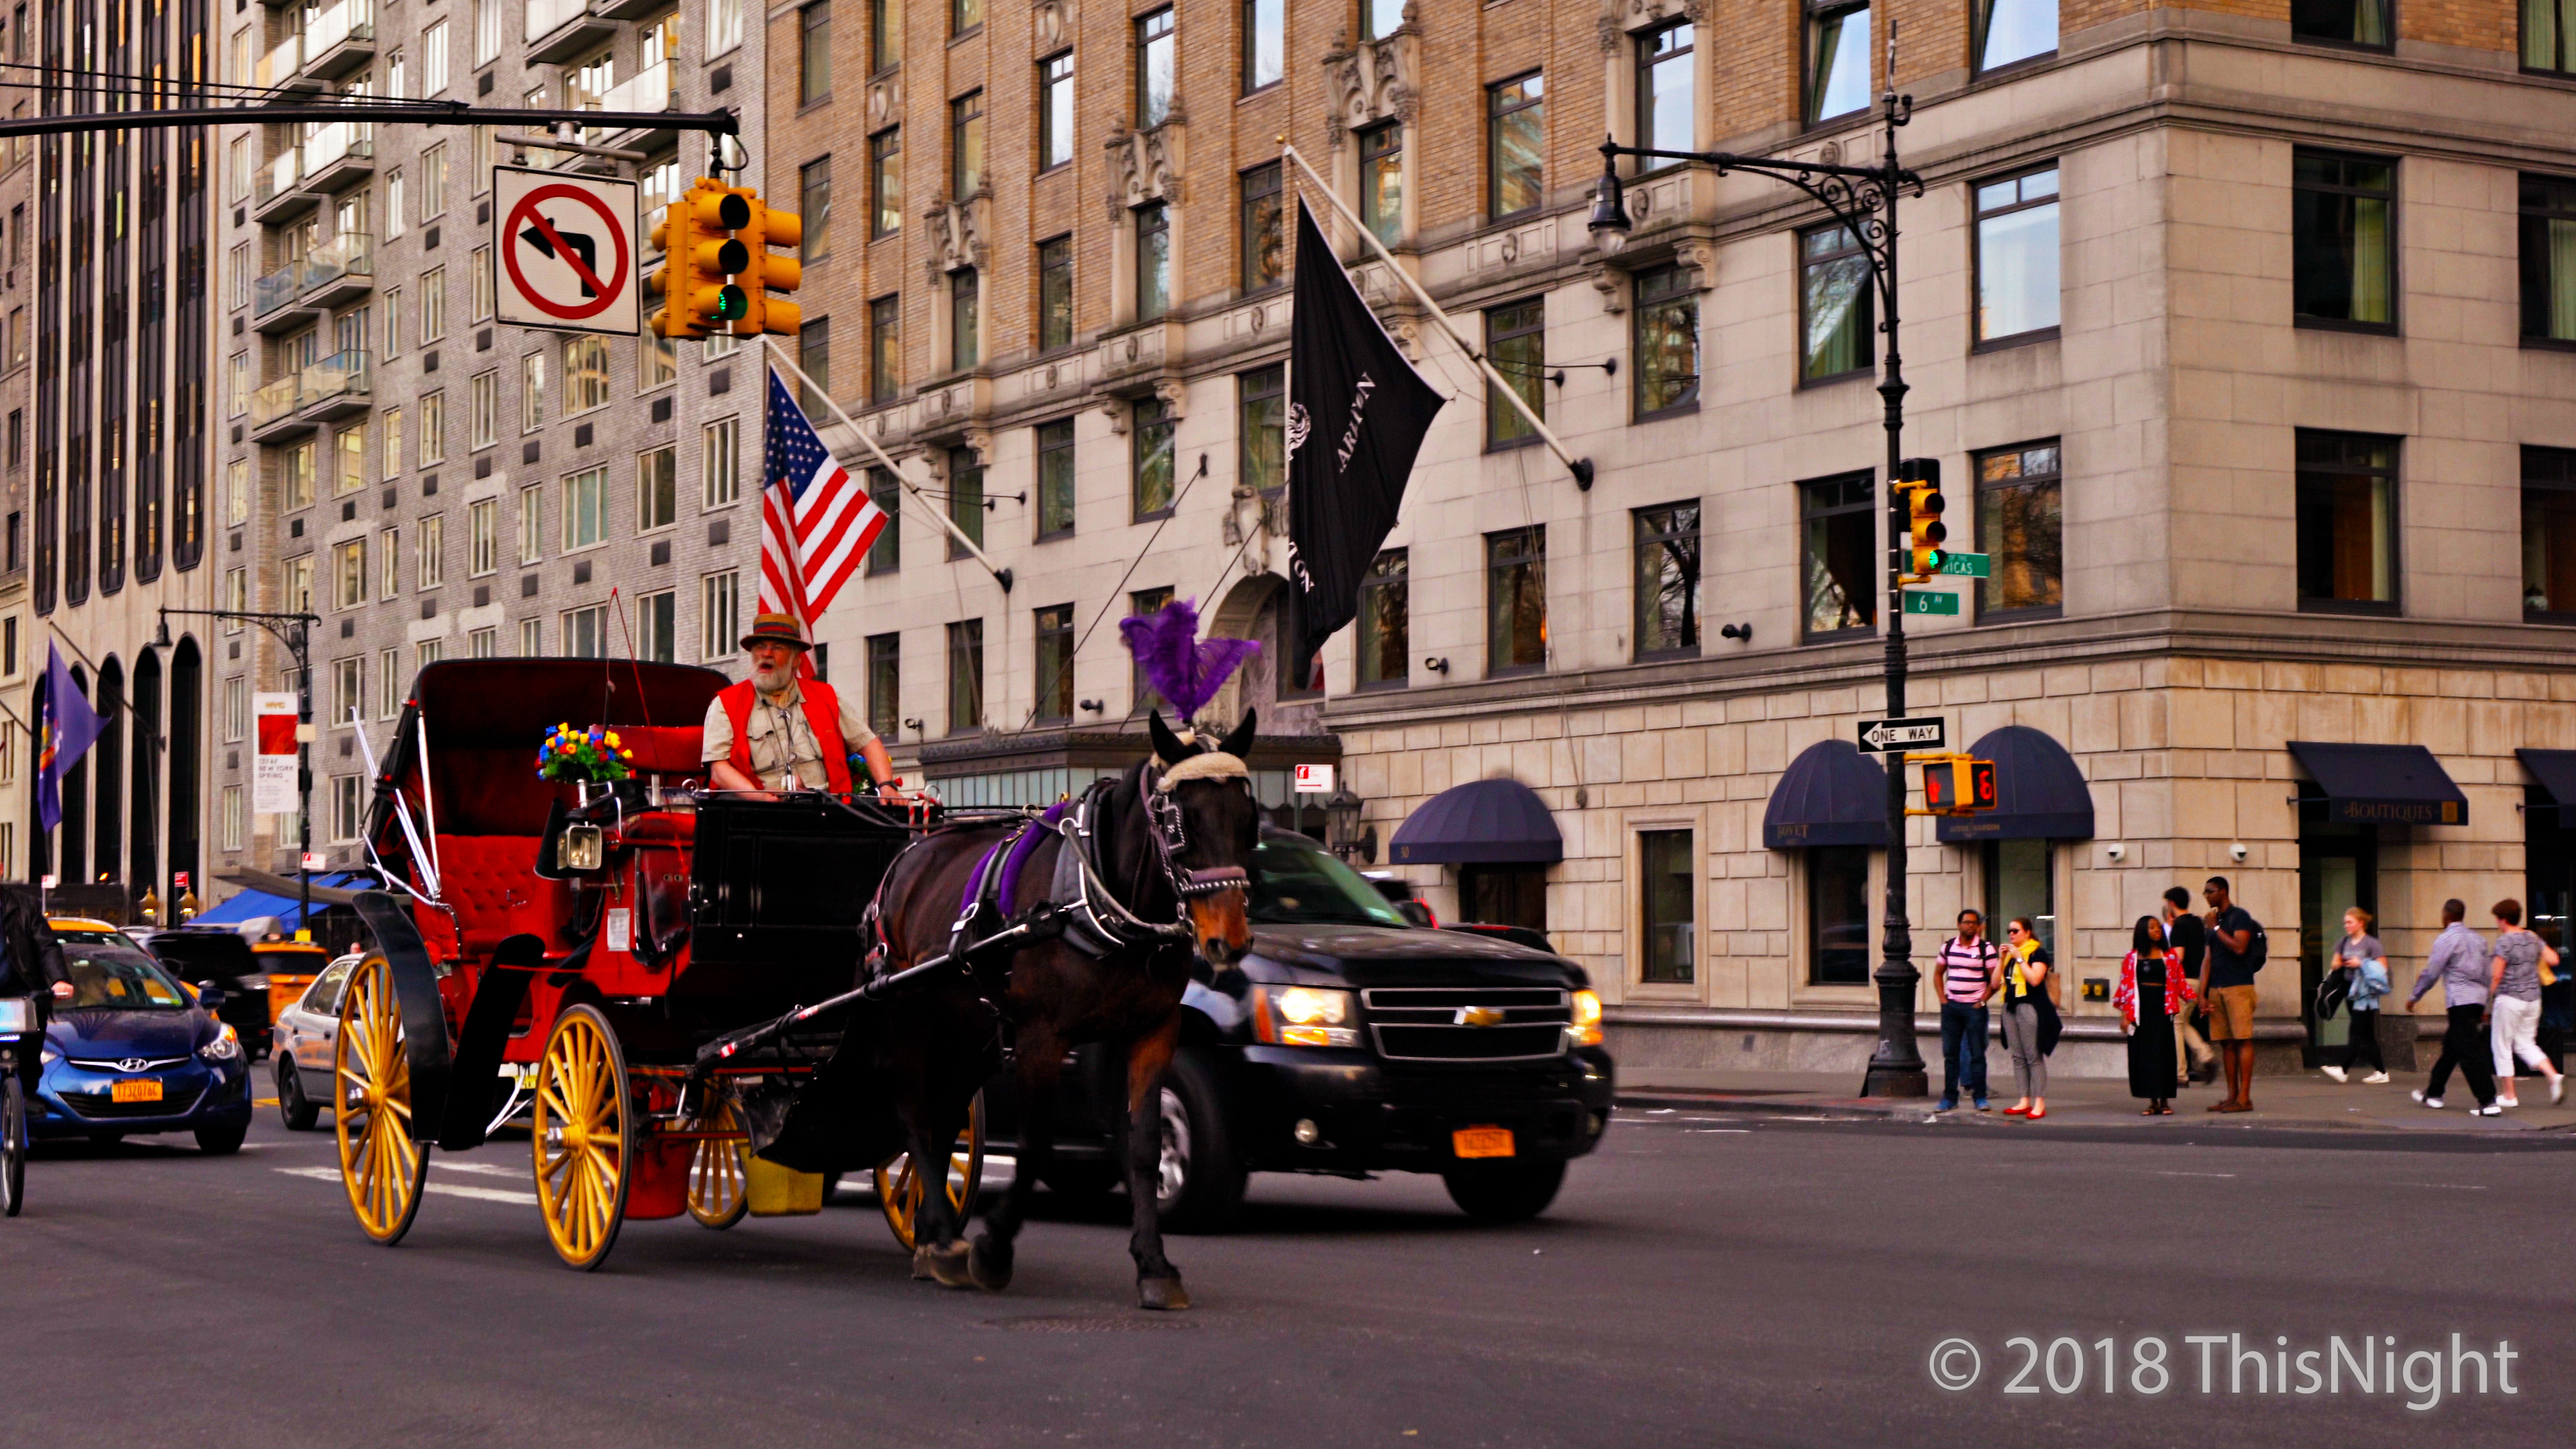 59 street.A horse-drawn carriage